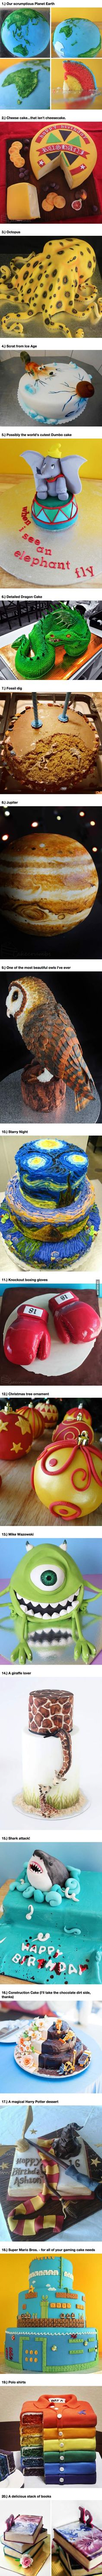 Here Are The Most Deliciously Genius Cakes Ever Creative. OMG THE LAST ONE!!!! I NEED IT!!